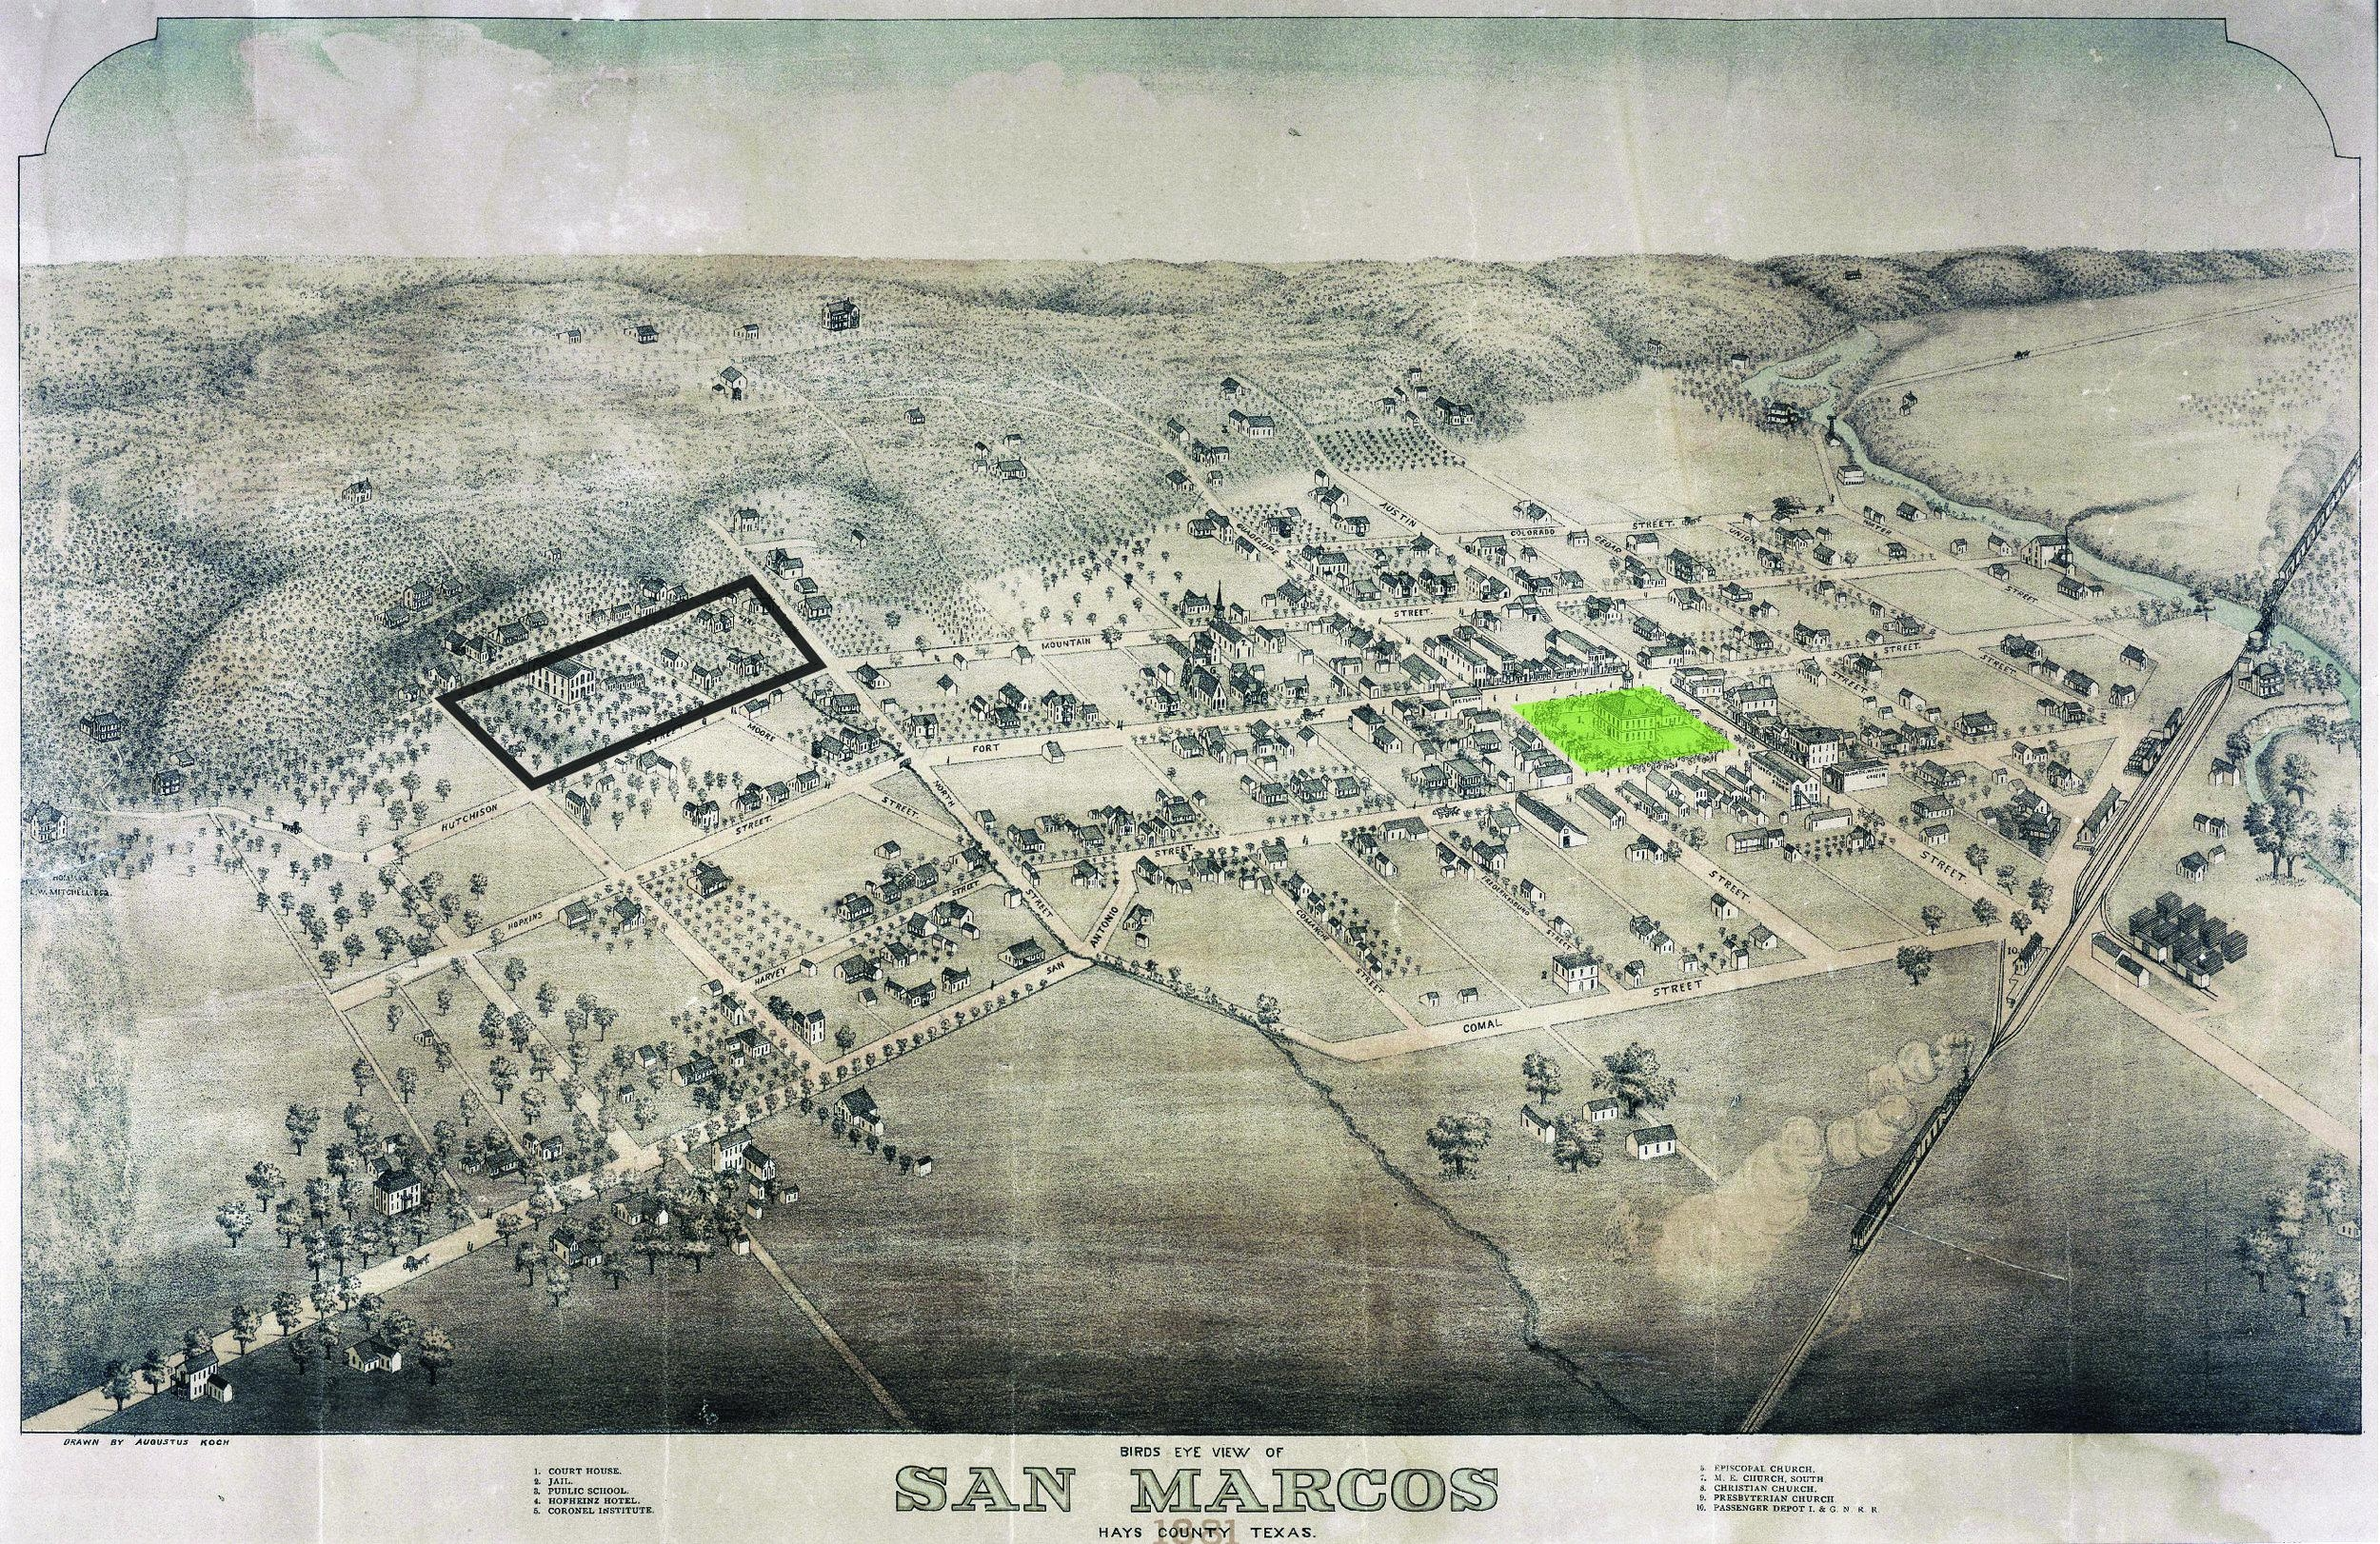 San Marcos Overlays_HISTORIC-02.jpg